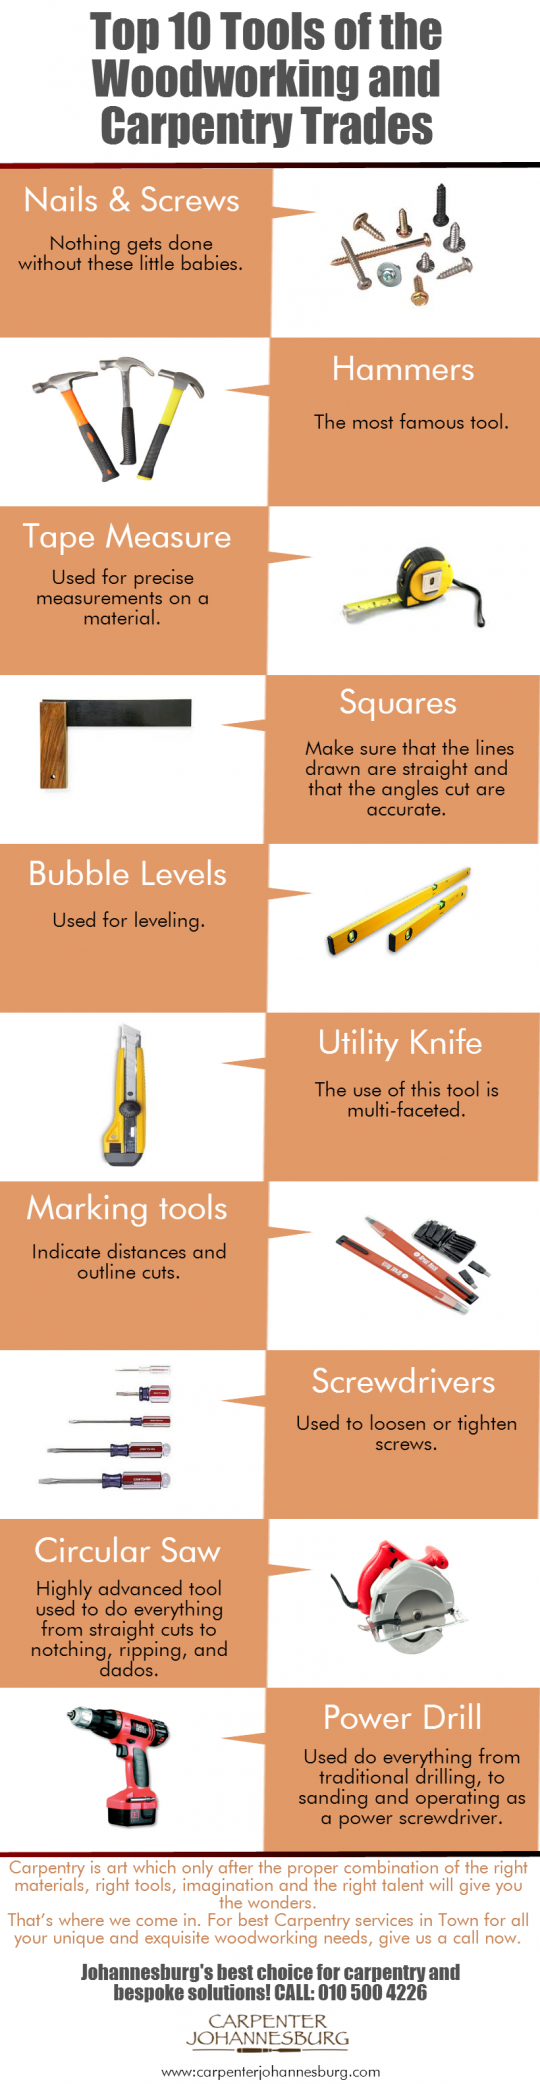 Top 10 Tools of the Woodworking and Carpentry Trades